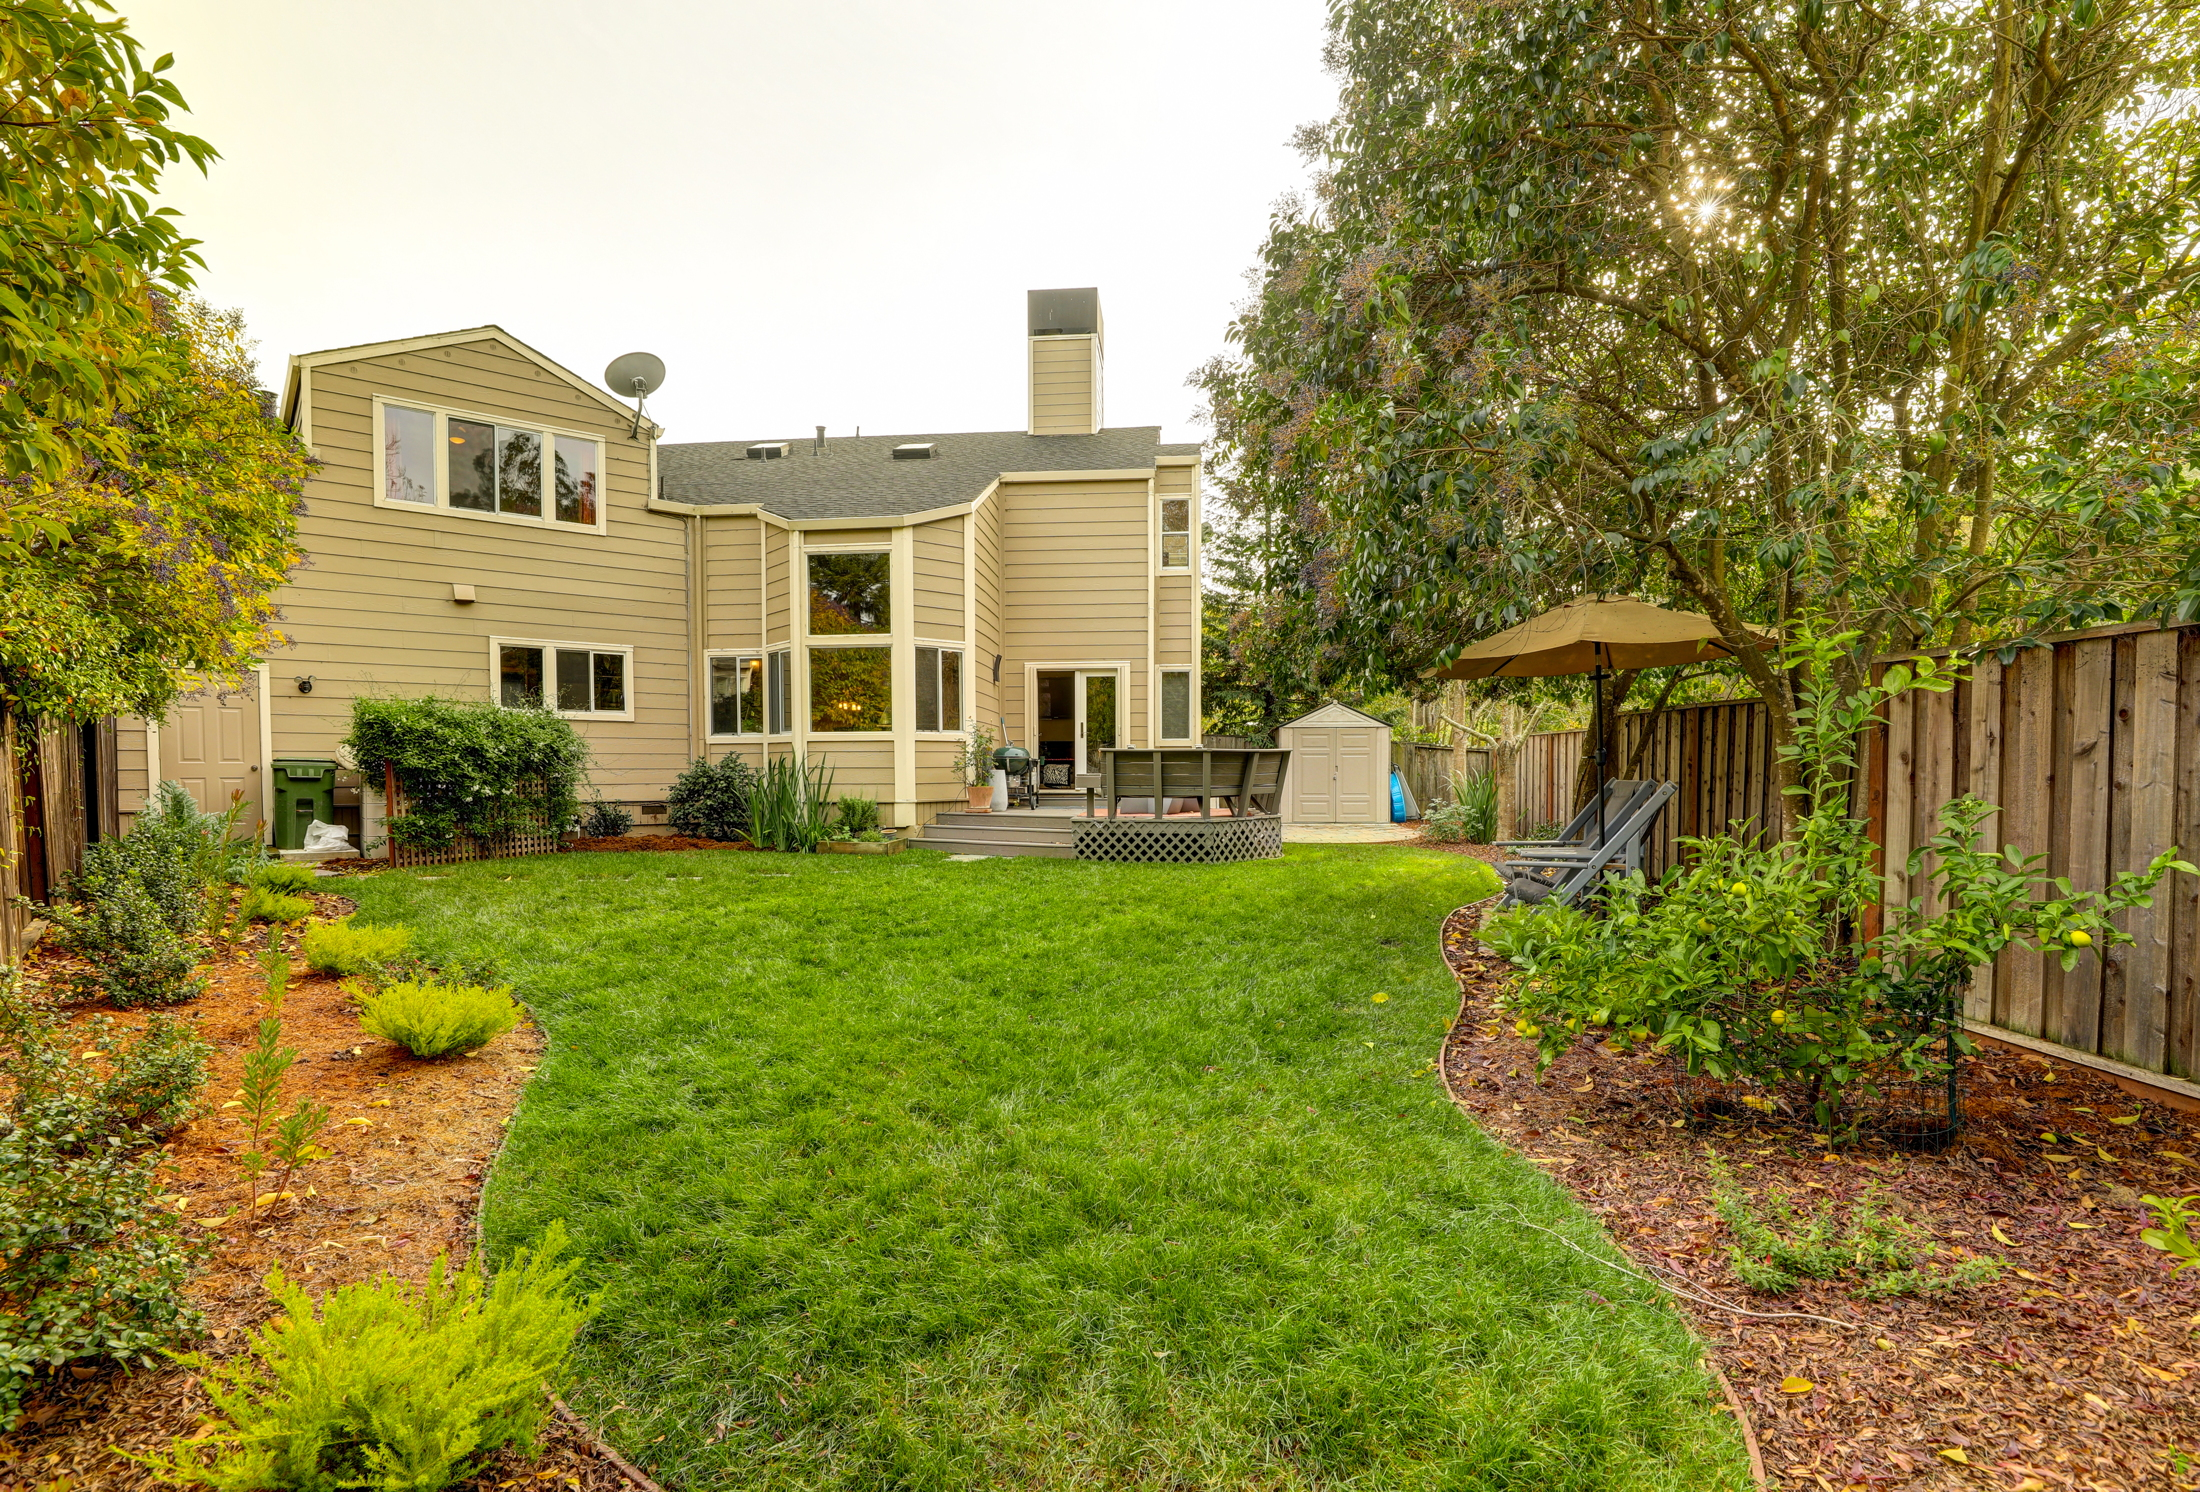 8Parkview 25 - Allie Fornesi at Own Marin with Compass - Corte Madera Realtor.jpg